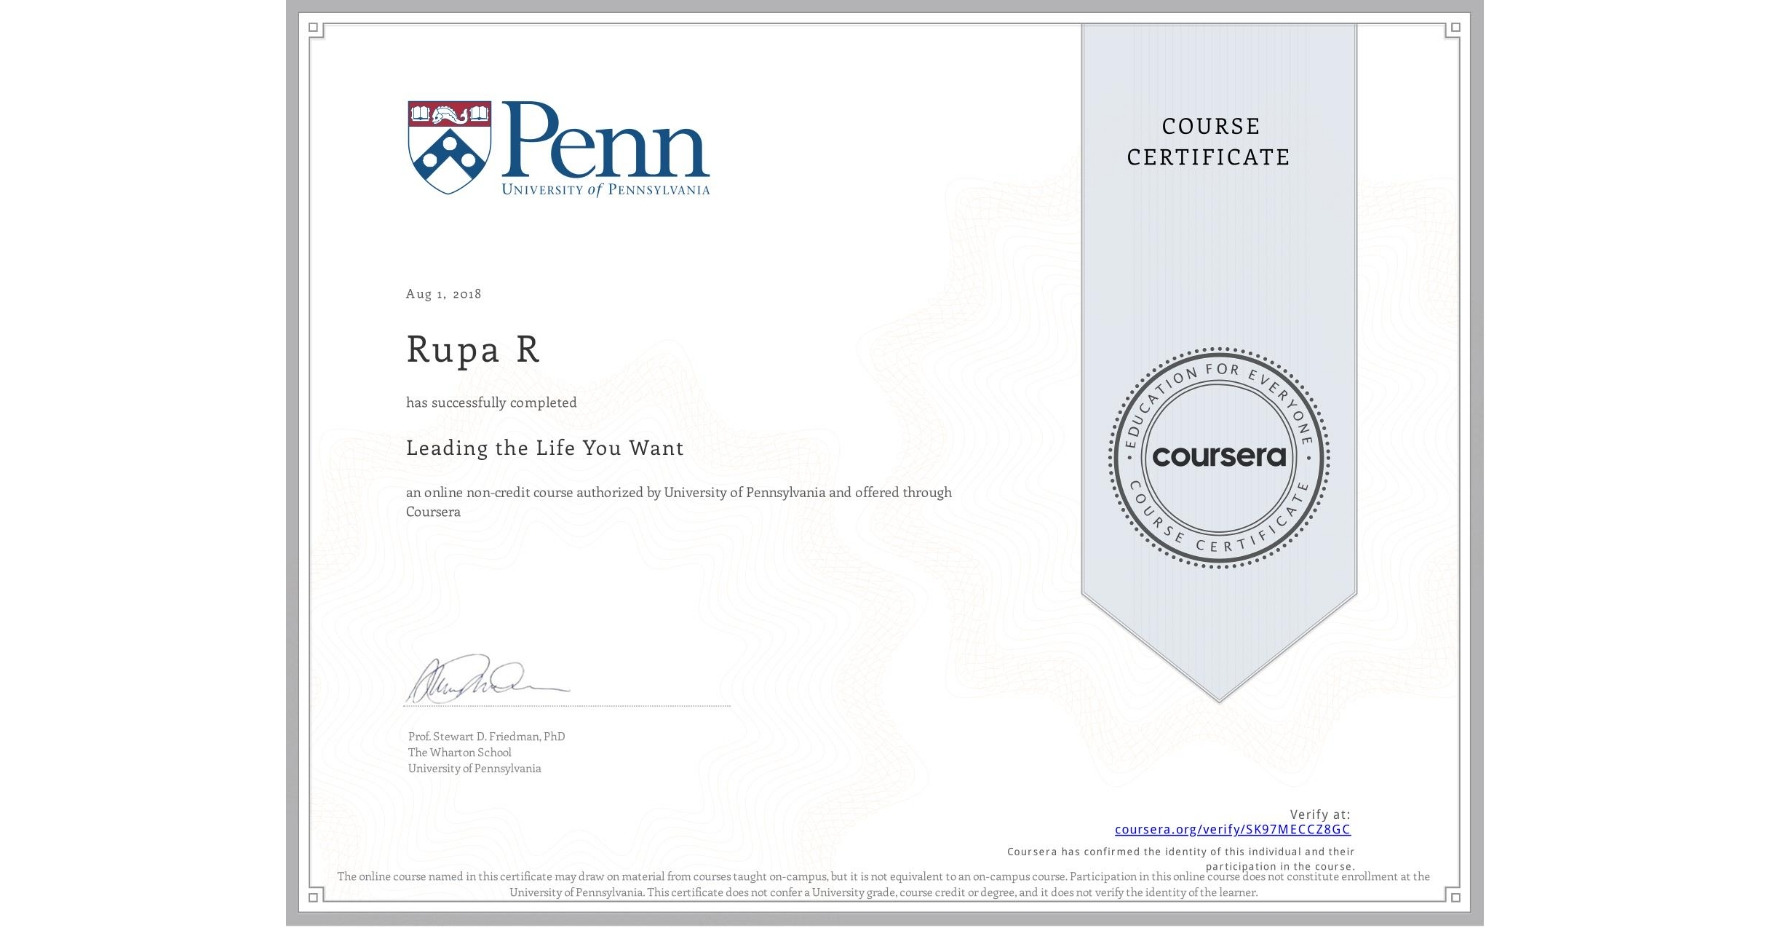 View certificate for Rupa R, Leading the Life You Want, an online non-credit course authorized by University of Pennsylvania and offered through Coursera